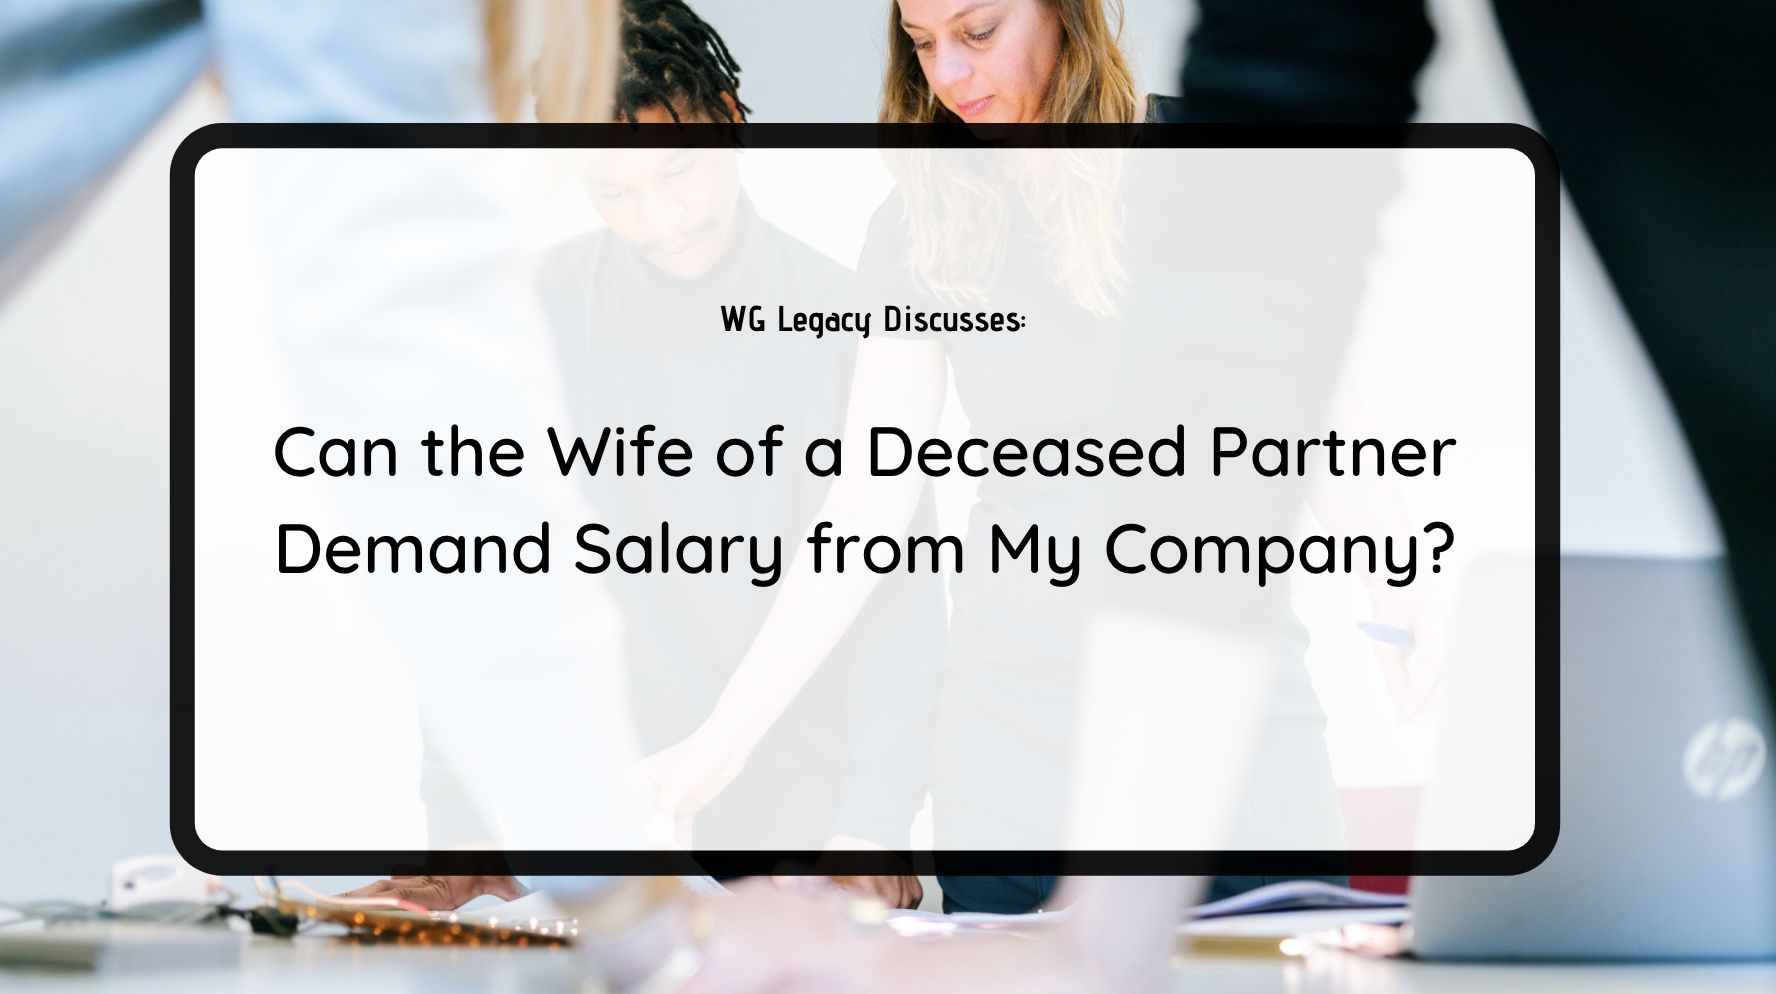 Can the Wife of a Deceased Partner Demand Salary from My Company?